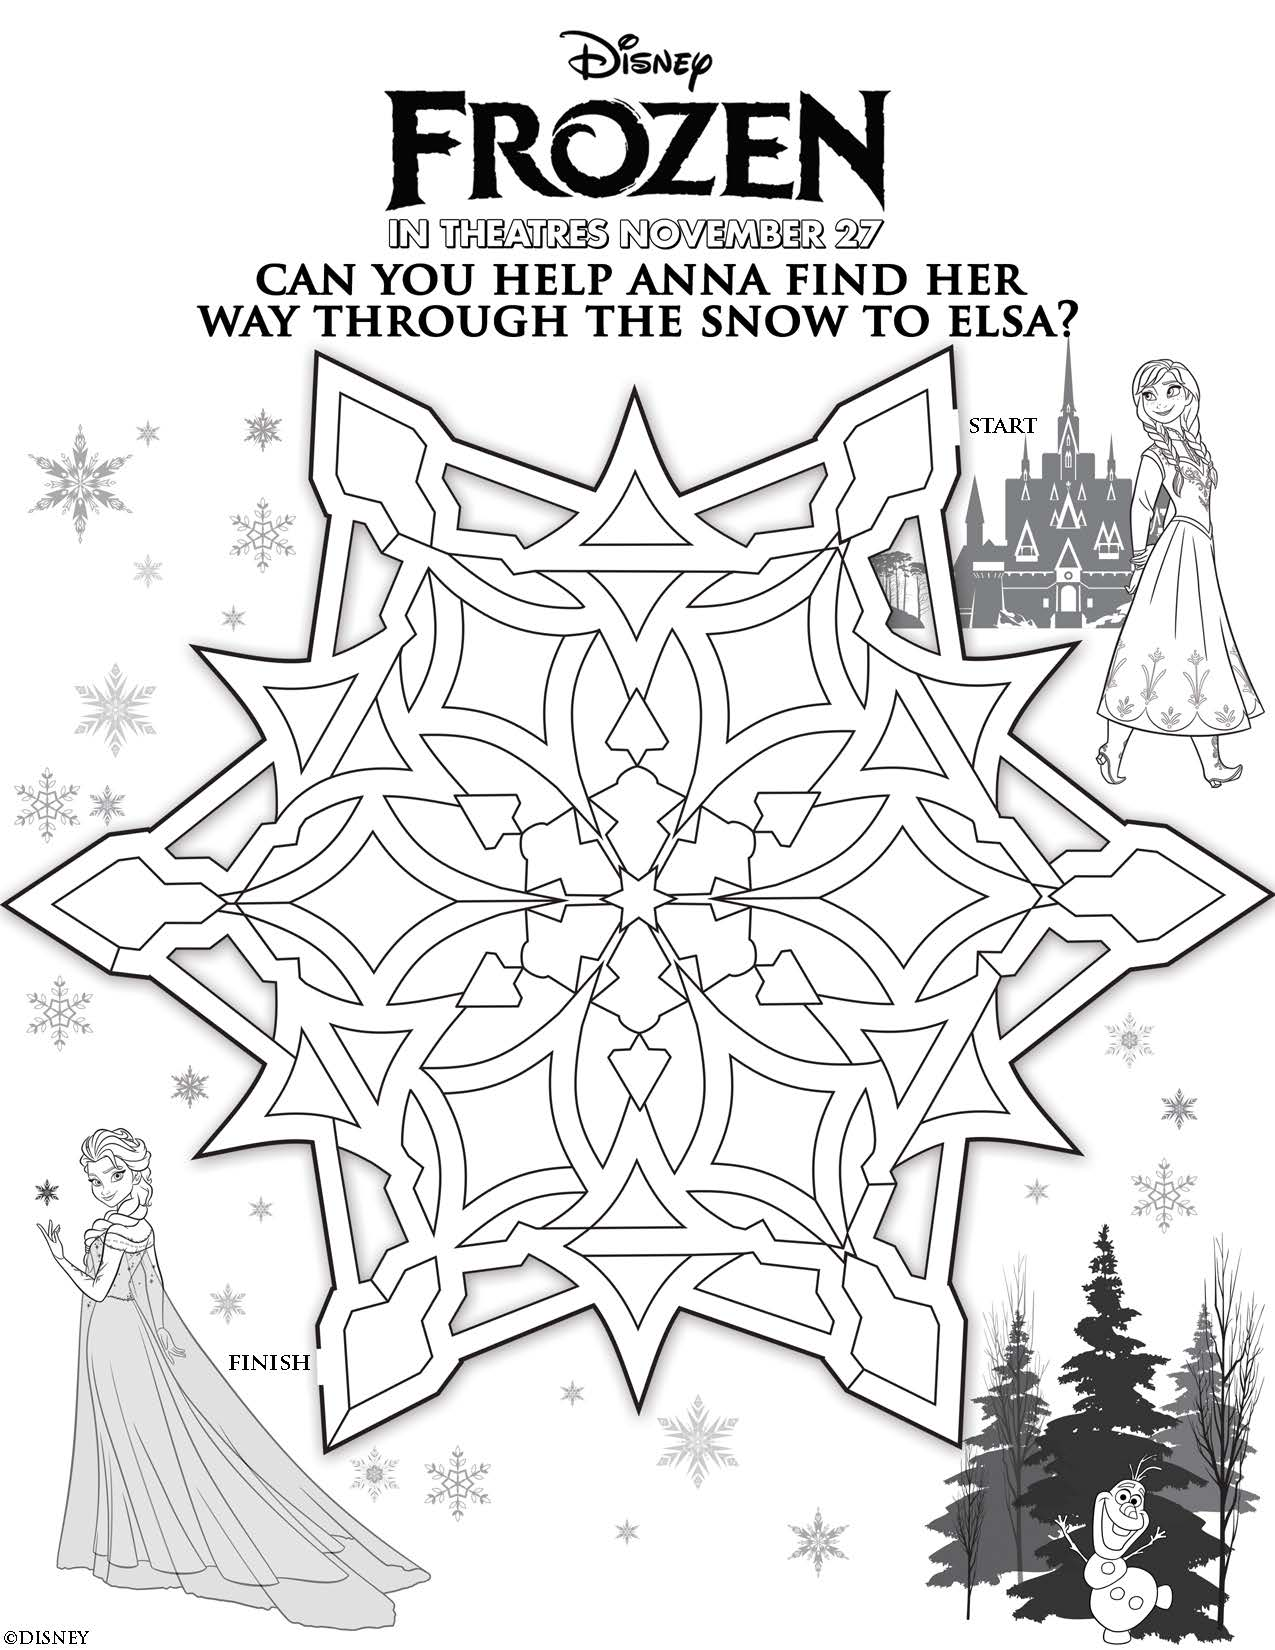 Disneys FROZEN Printable Activities And Games For Kids